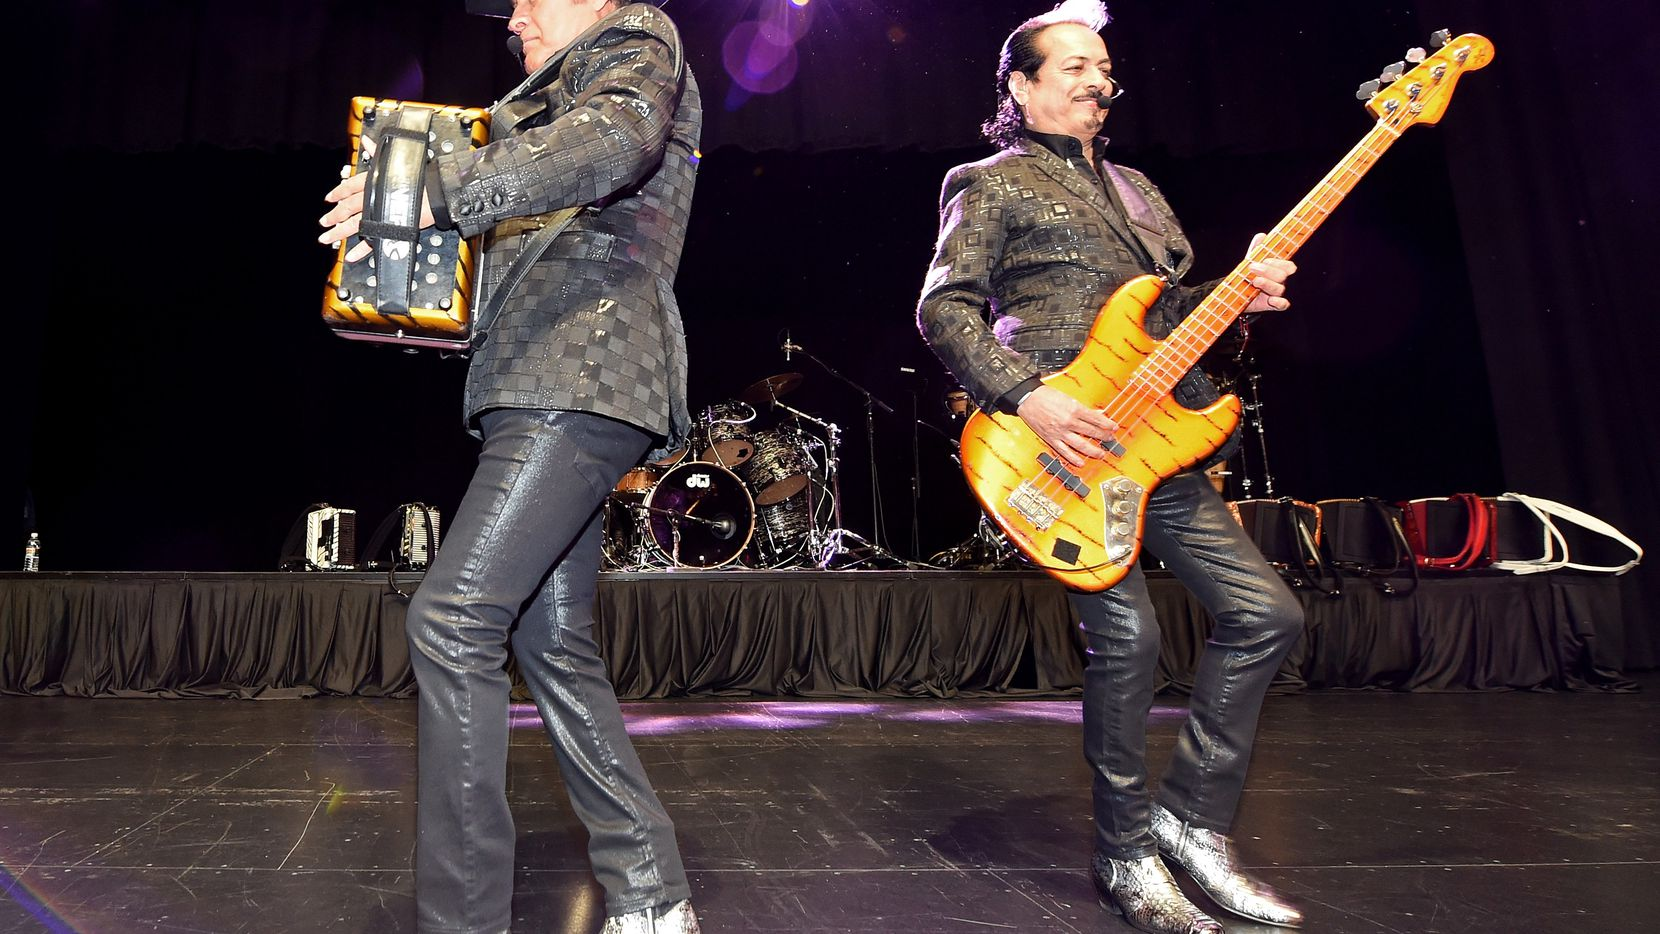 Recording artists Jorge Hernandez (L) and Hernan Hernandez of the band Los Tigres del Norte perform at the Nevada Democratic Party's election results watch party at the Aria Resort & Casino on November 8, 2016, in Las Vegas.